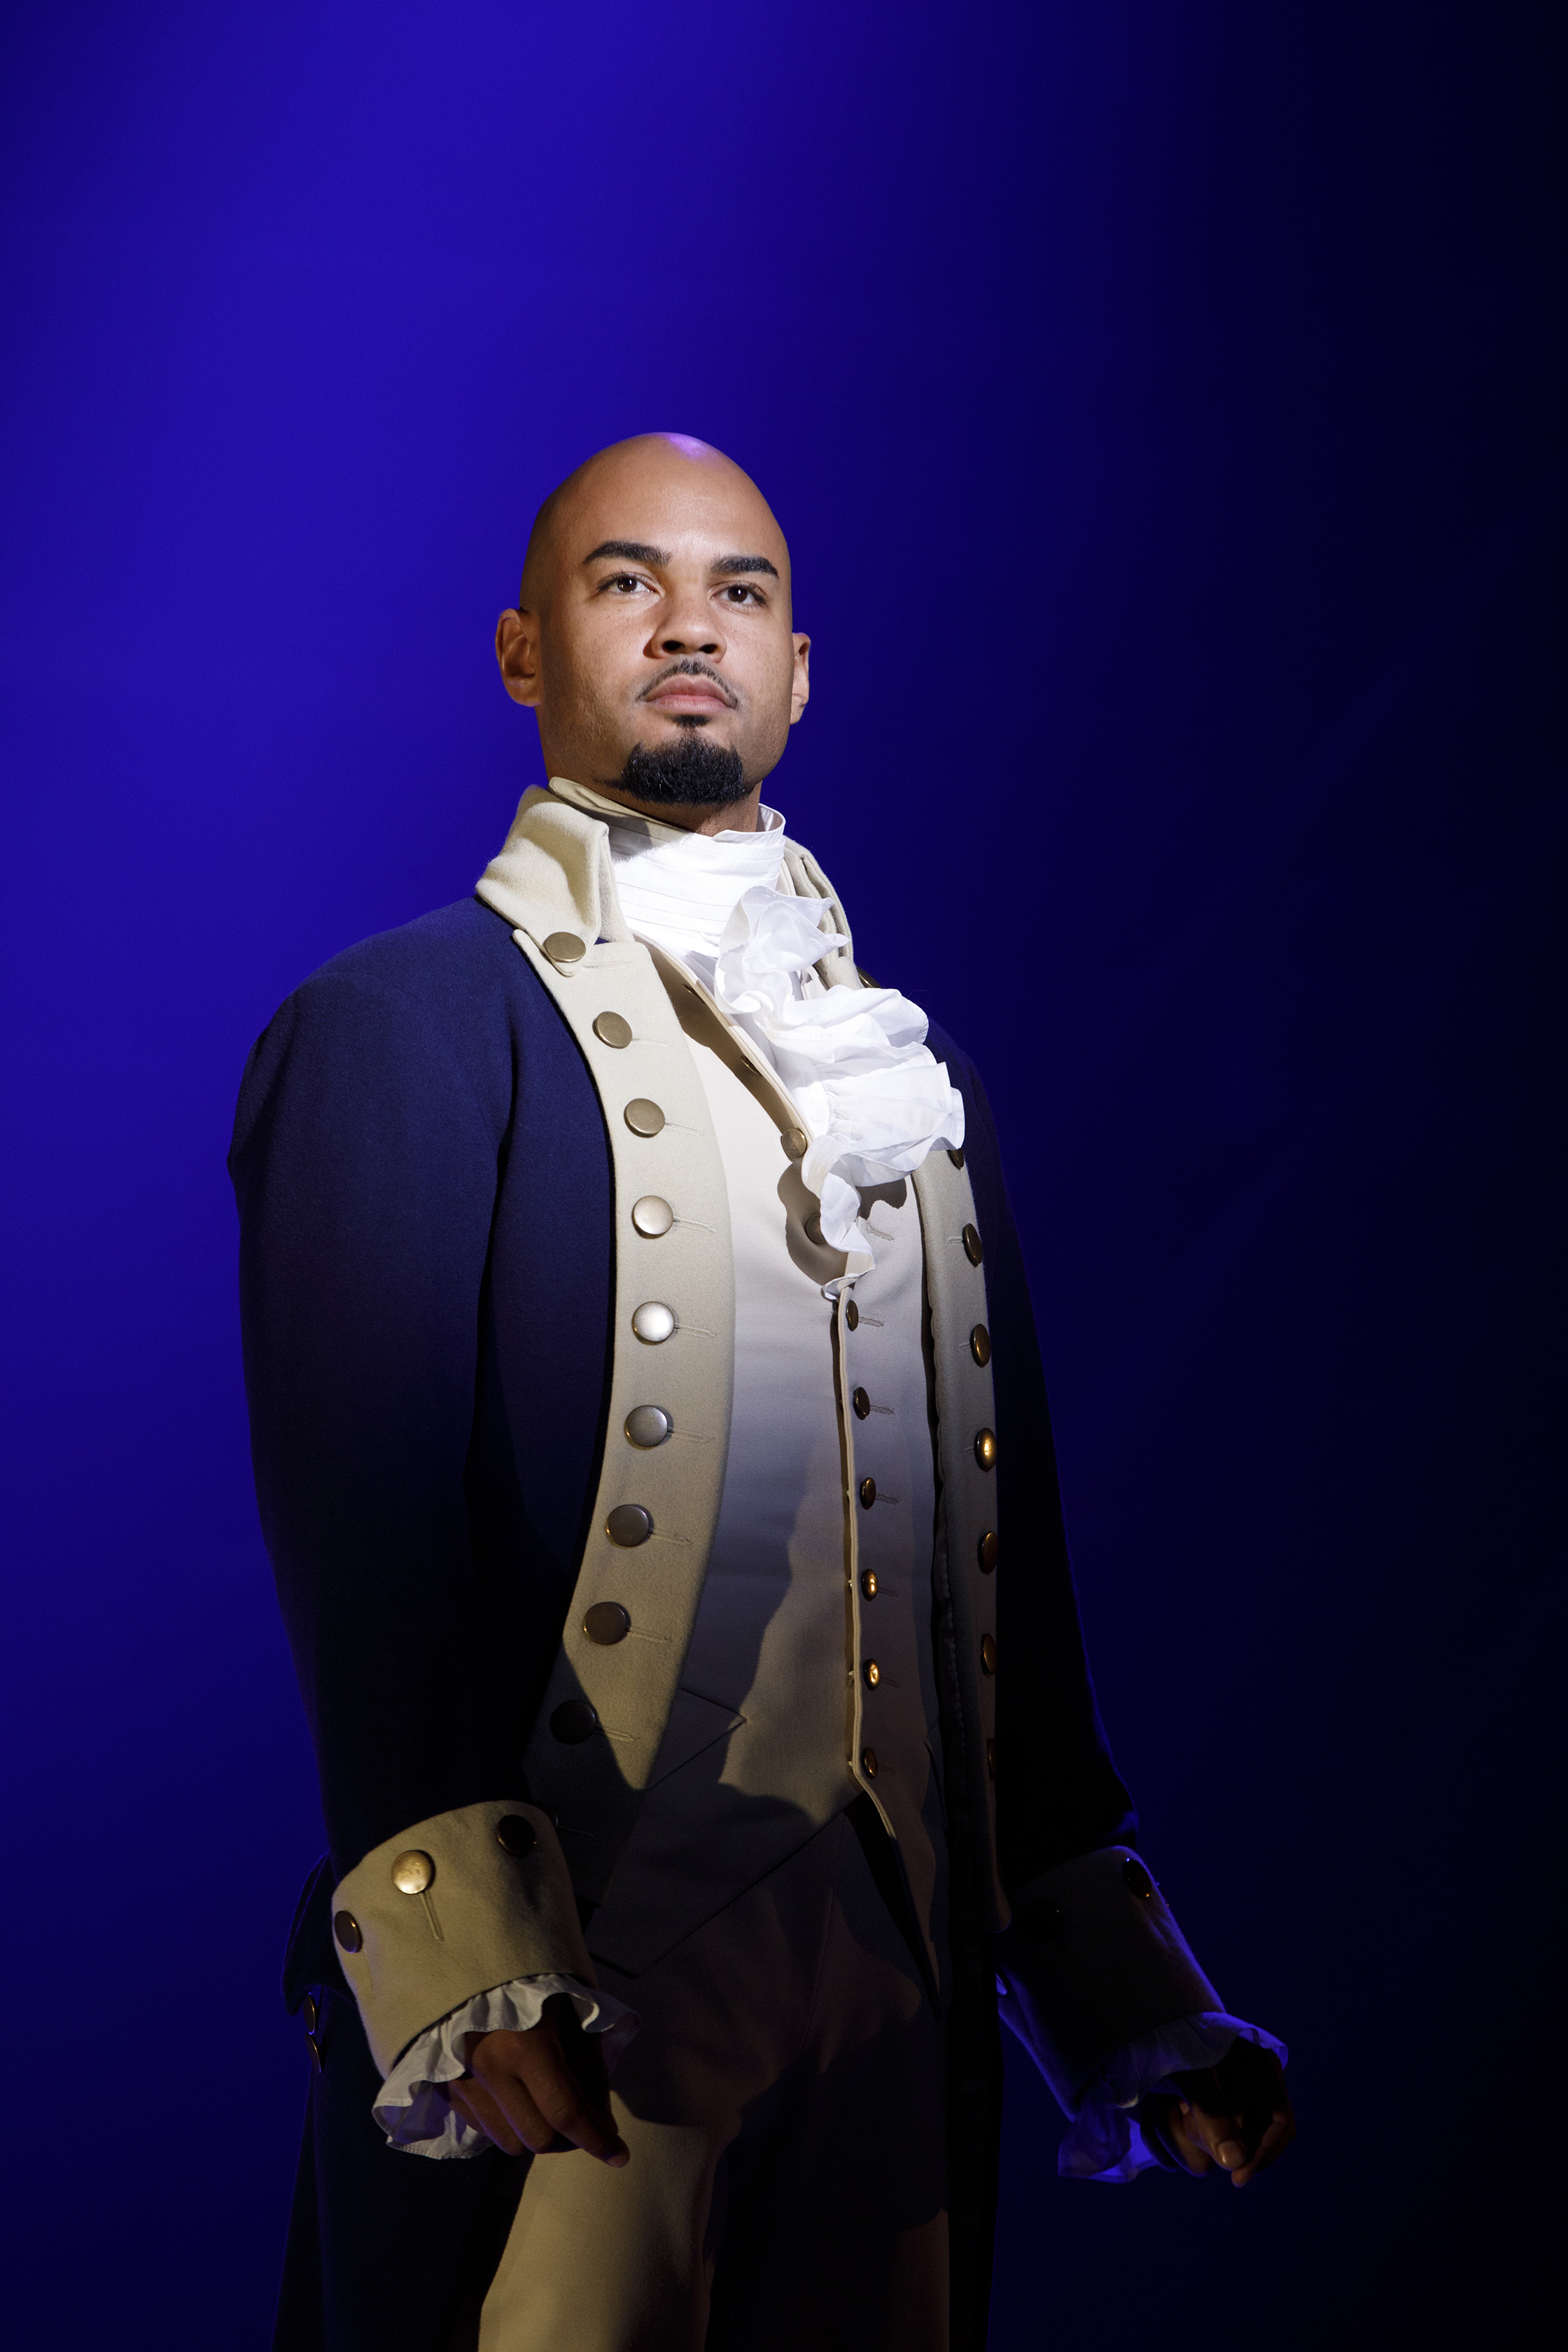 """icholas Christopher plays Aaron Burr for the Los Angeles engagement of """"Hamilton."""" (photo by Joan Marcus/courtesy of Johnny Gilmour from Baseline Theatrical)"""